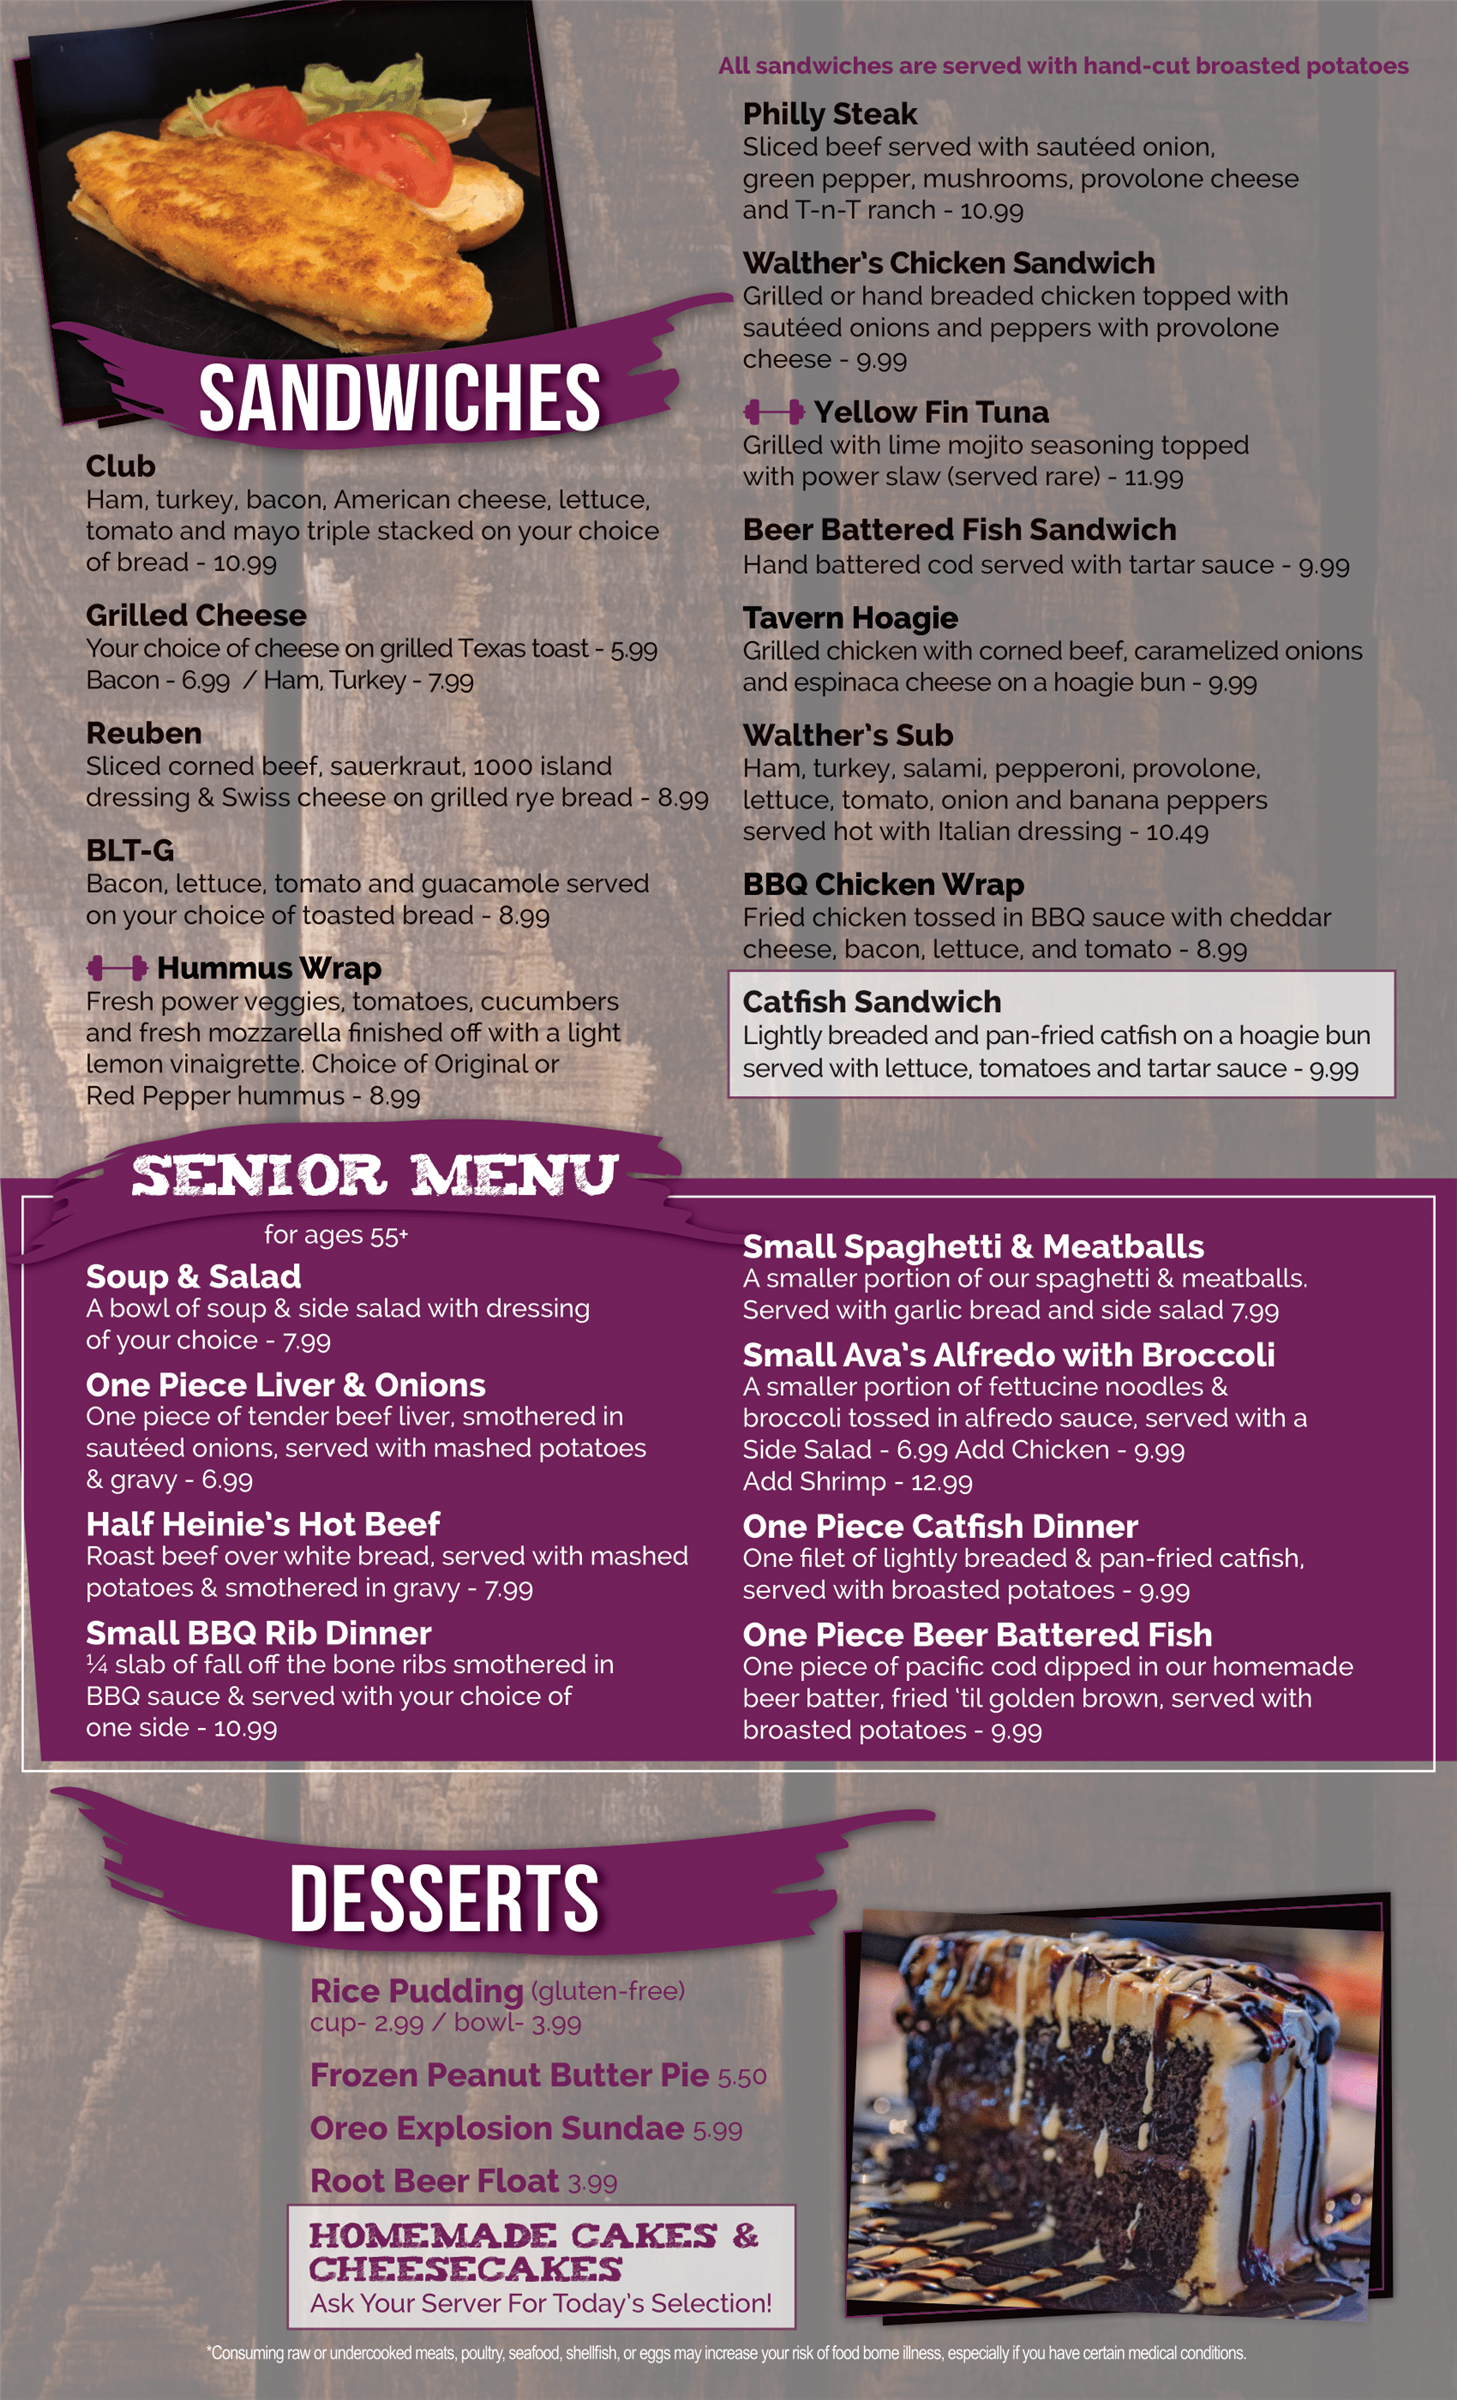 Sandwiches, Senior Menu and Desserts menu page For Walthers Twin Tavern